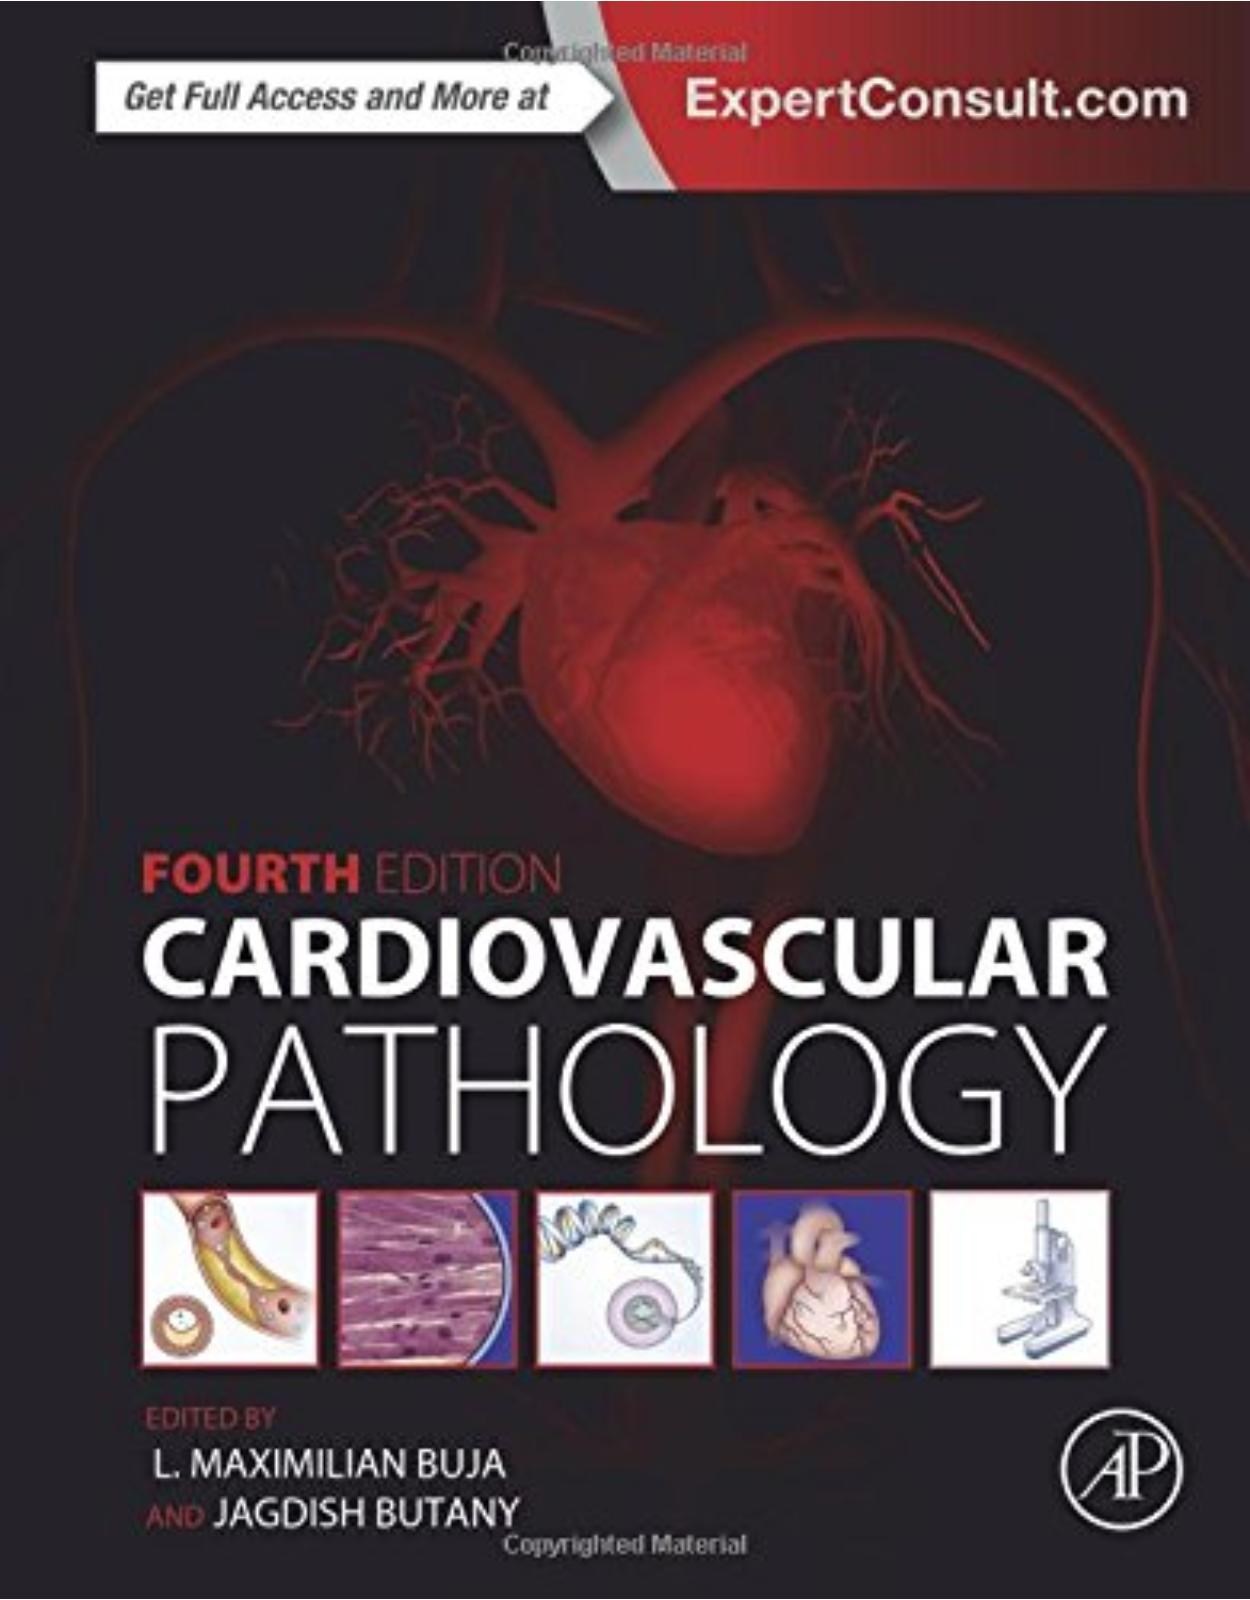 Cardiovascular Pathology